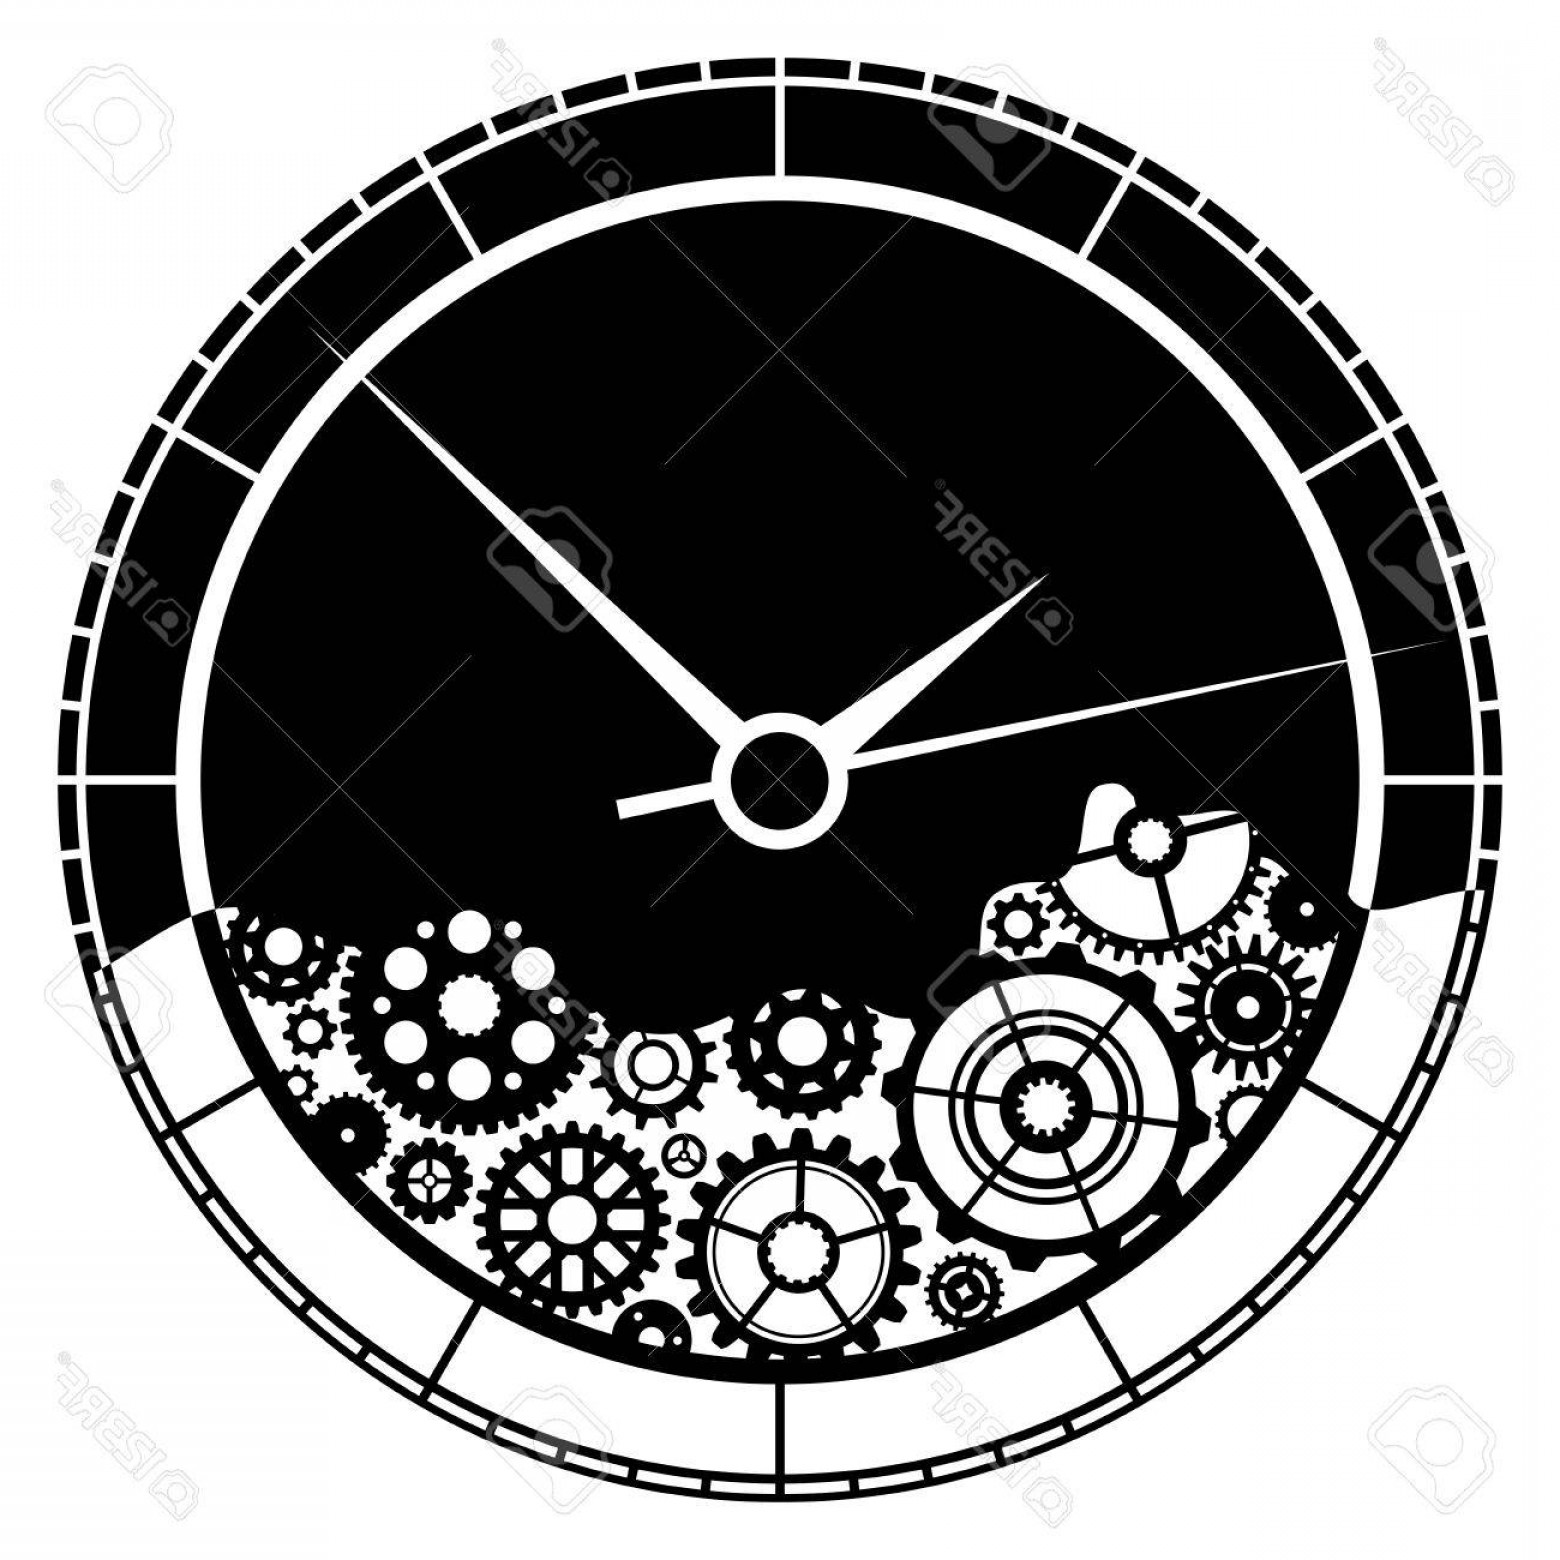 Watch Gears Vector: Photostock Vector Clock And Gears Illustration Clock Consists Of Various Gears Isolated On White Background